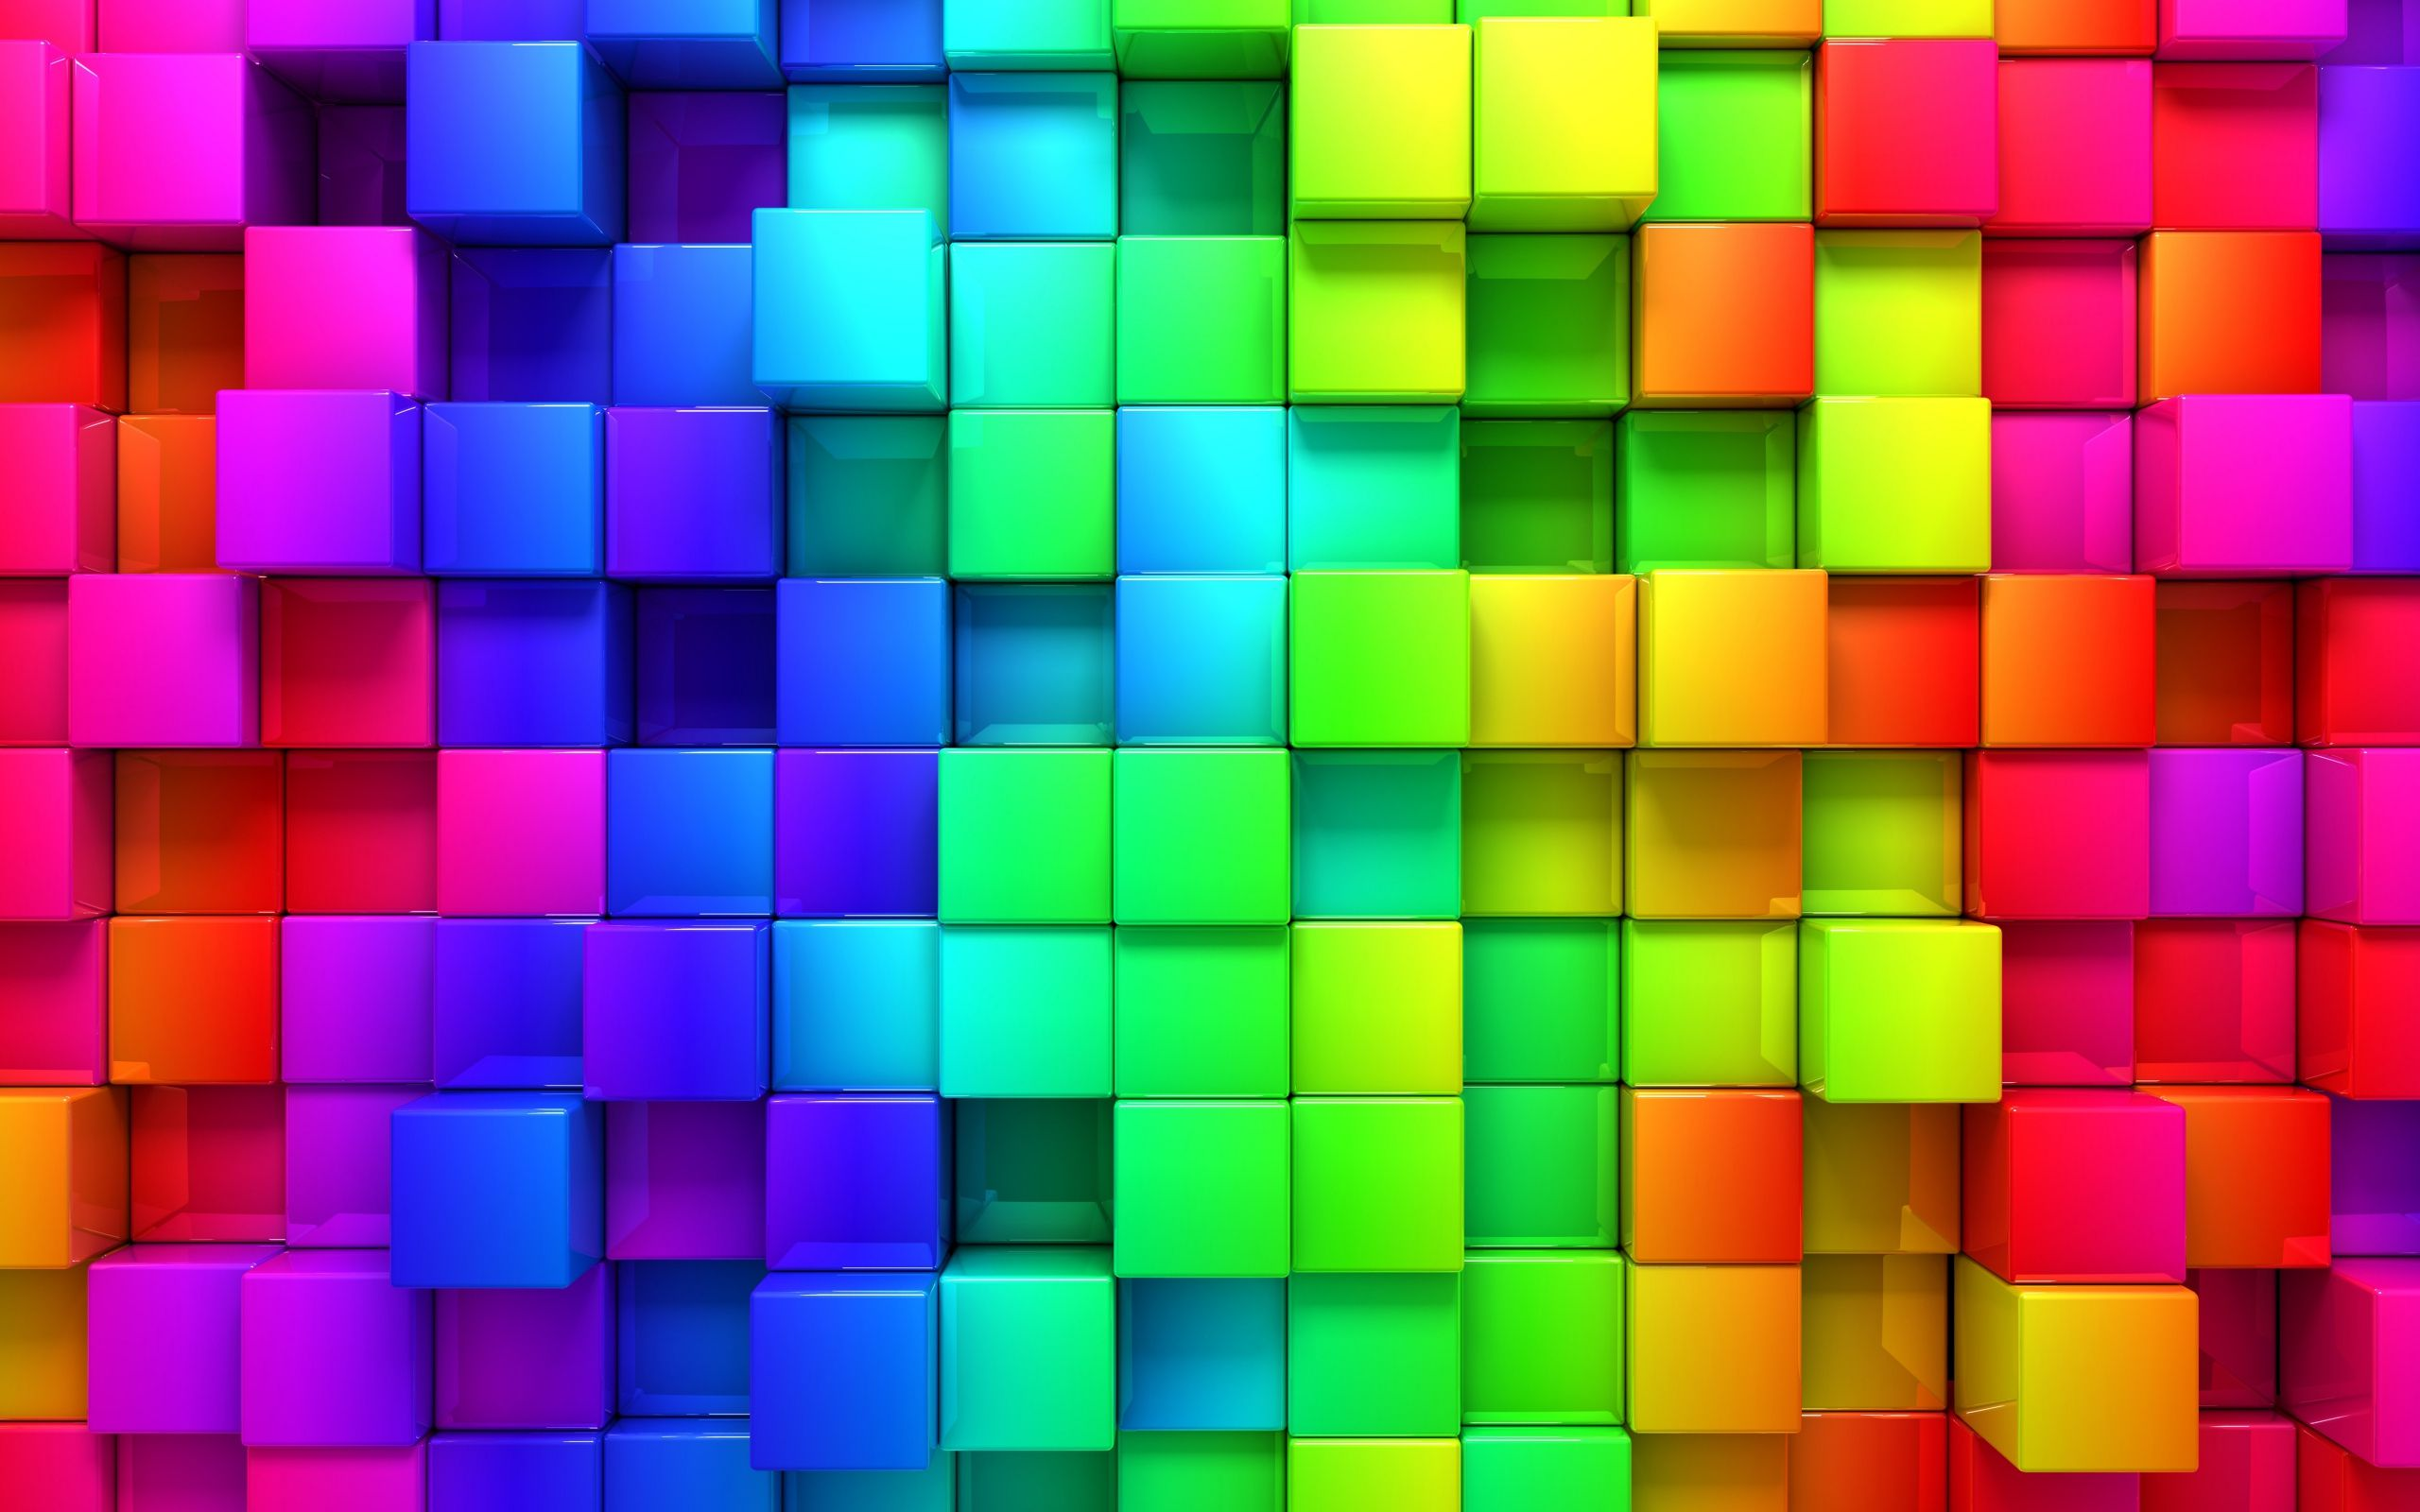 Colorfull Cubes Rainbow Wallpaper Colorful Backgrounds Colorful Wallpaper